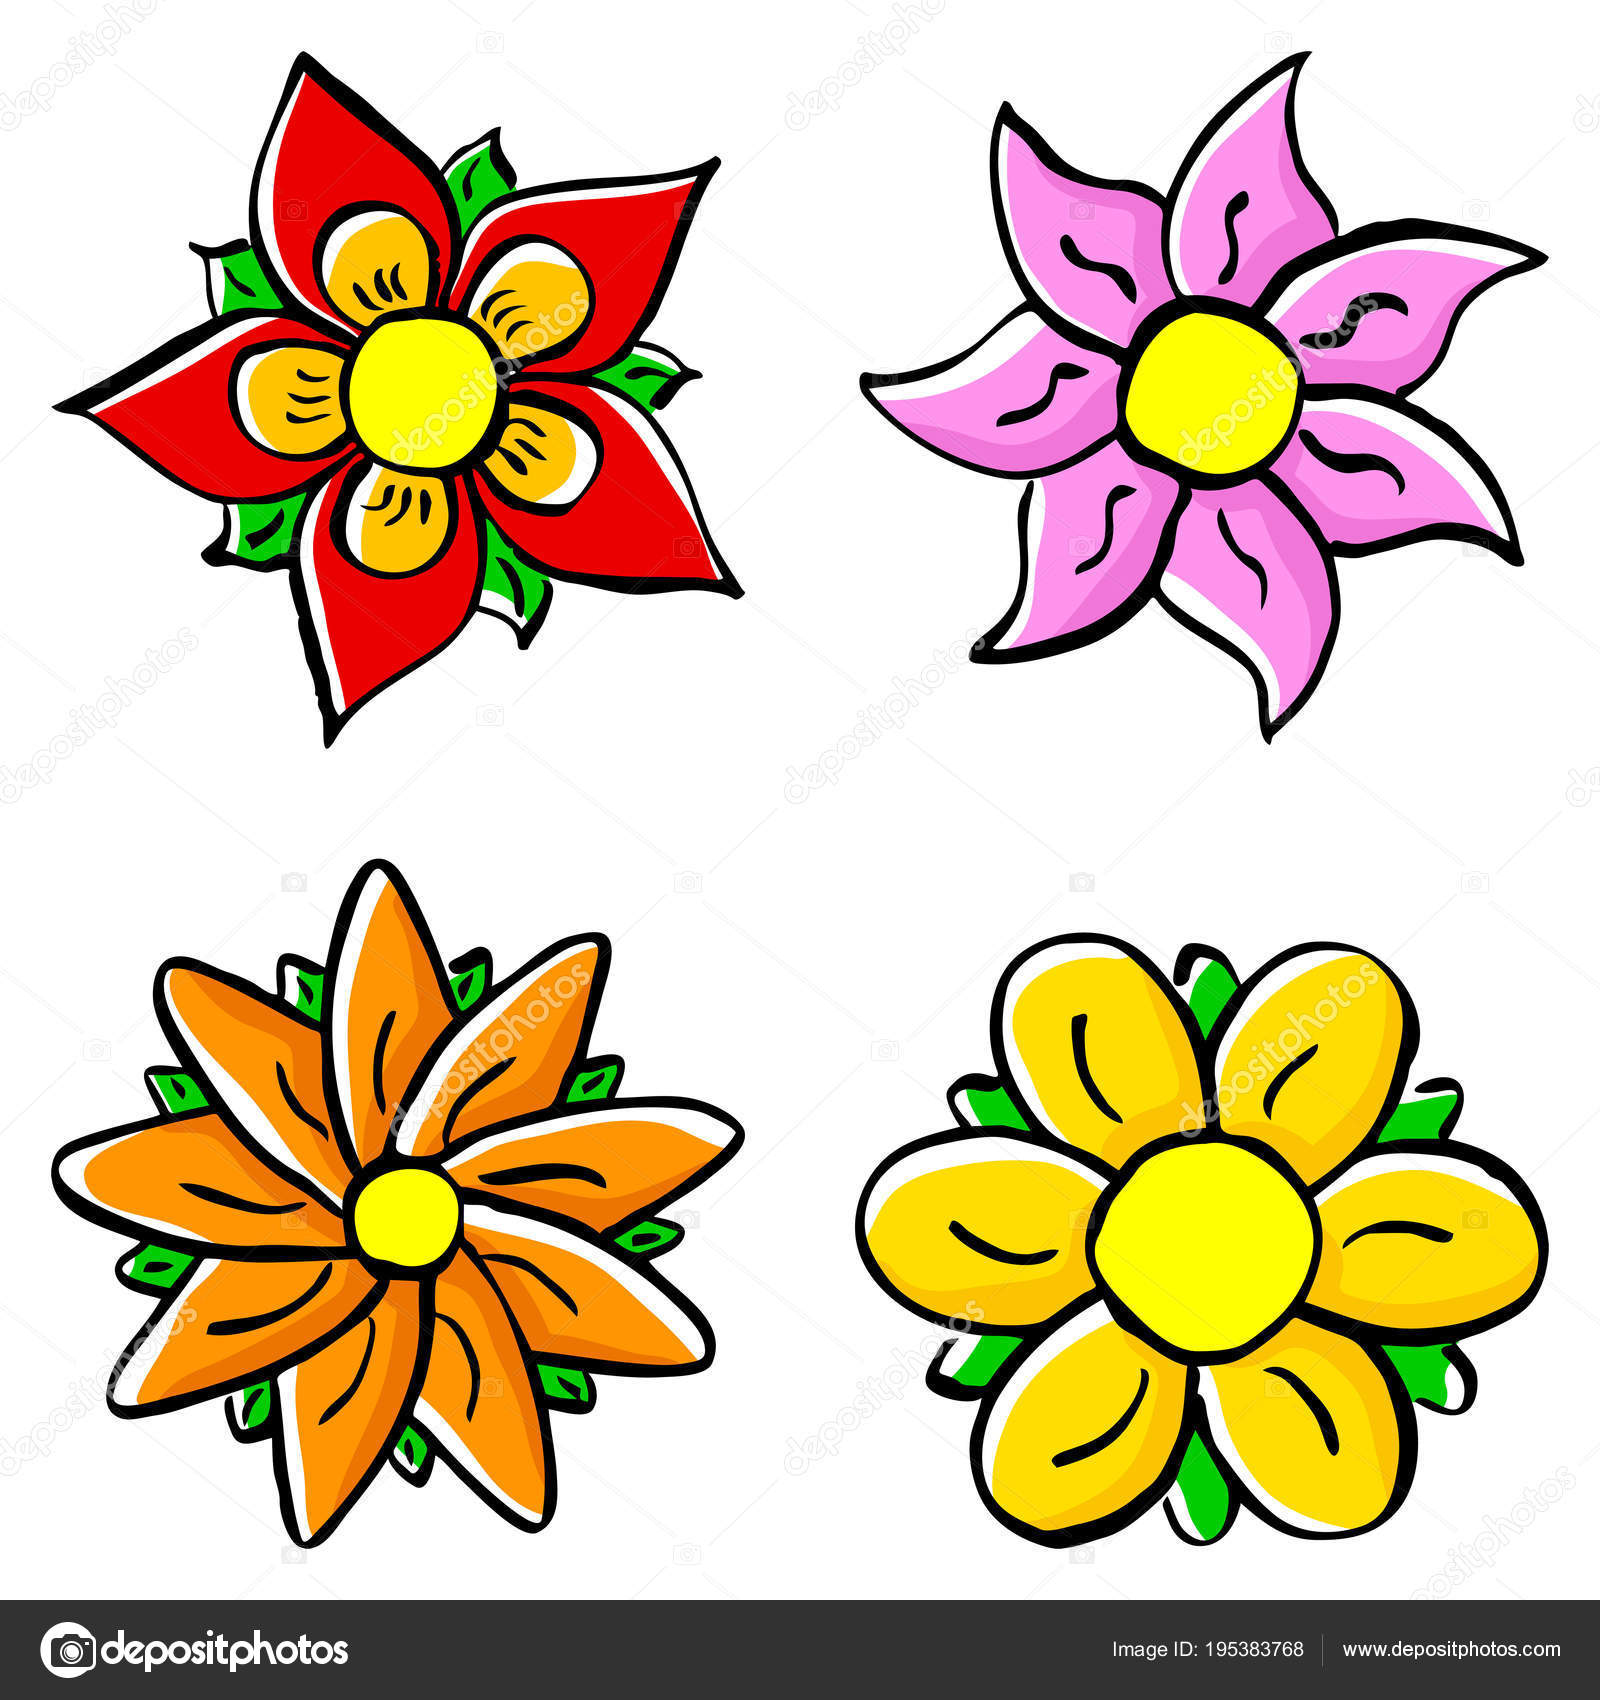 Colorful Cartoon Flowers Stock Vector C Antimartina 195383768